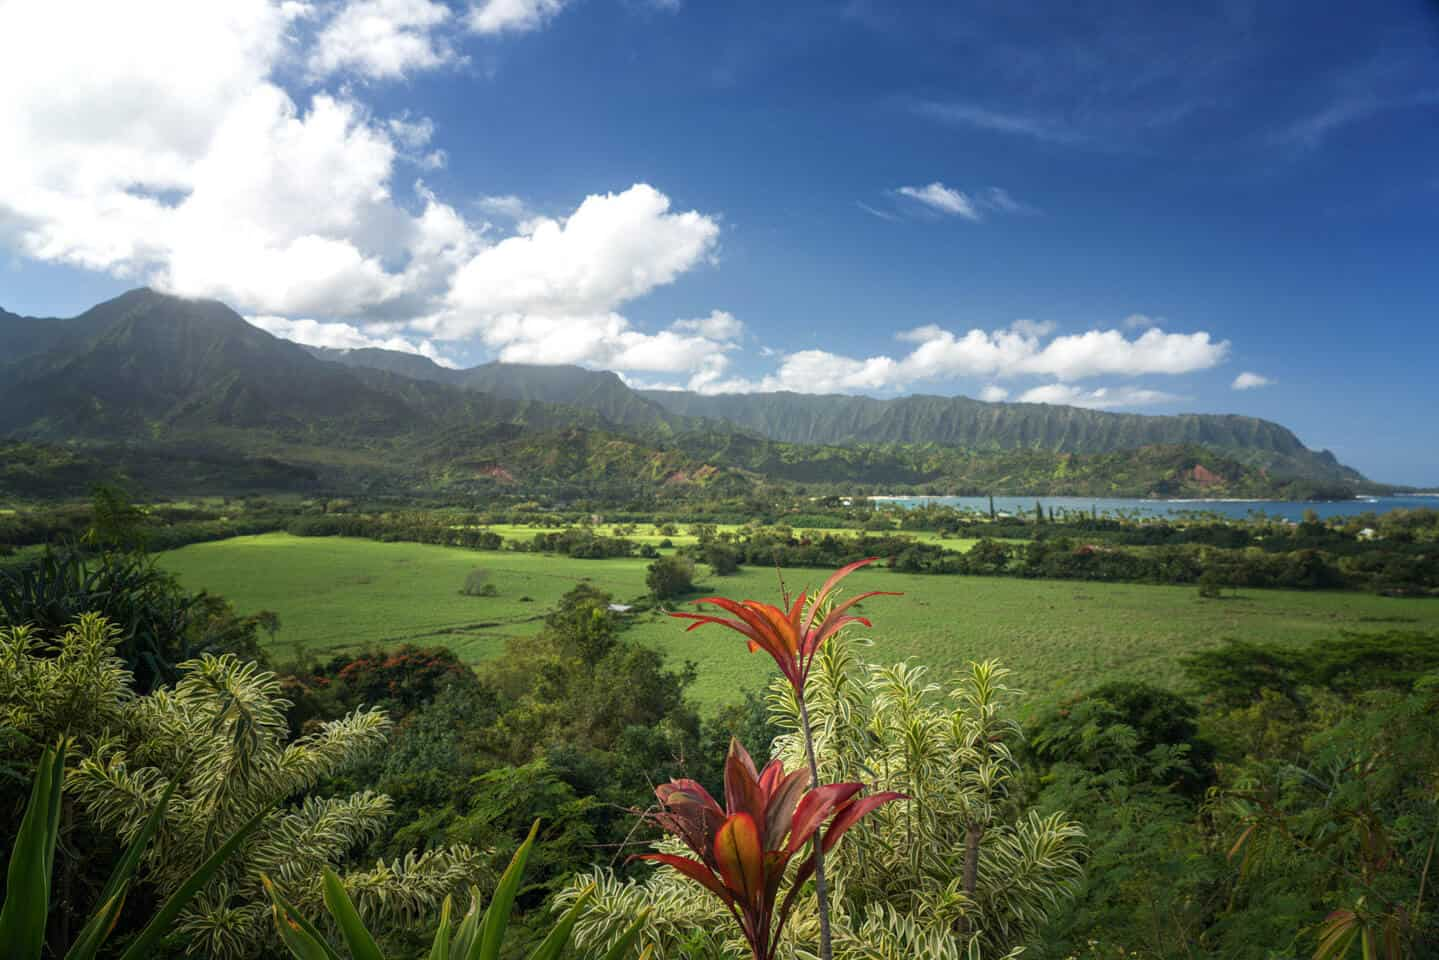 The views of Hanalei Bay are Day 6 on this 7 day itinerary for Kauai.